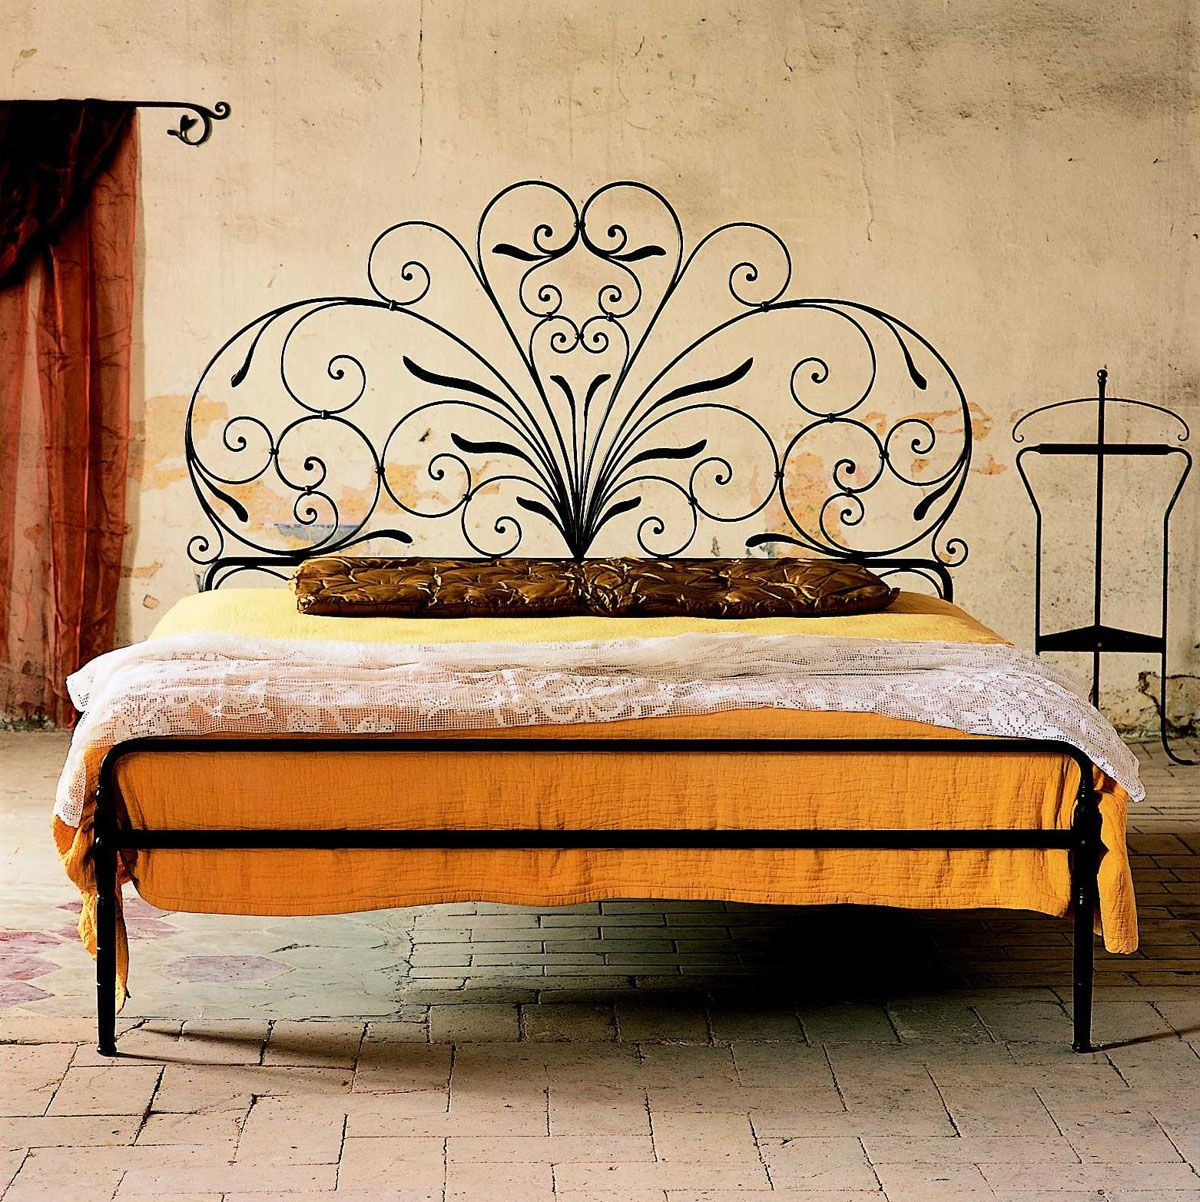 Bedroom Designs Metal Beds tuscan decorating ideas | tuscan beds design ideas | idesignarch